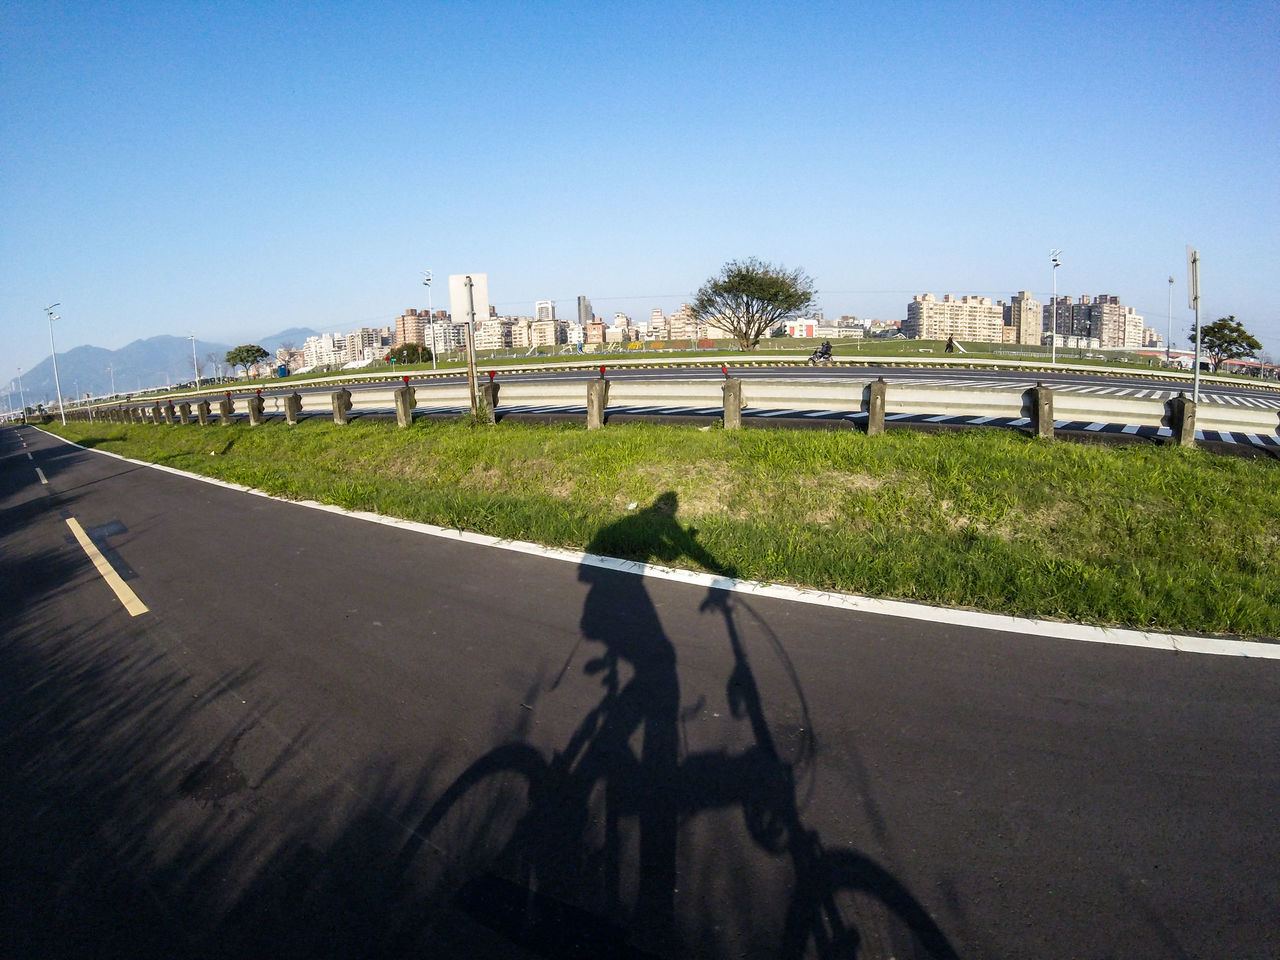 Bike Biking City Life Clear Sky Daily Project Day Exercise Exploring EyeEm Gallery Grass Nature Outdoors Real People Riverside Road Shadow Sunlight Taking Photos The View And The Spirit Of Taiwan 台灣景 台灣情 Gopro Gopro Session Bicycle Let's Go. Together.